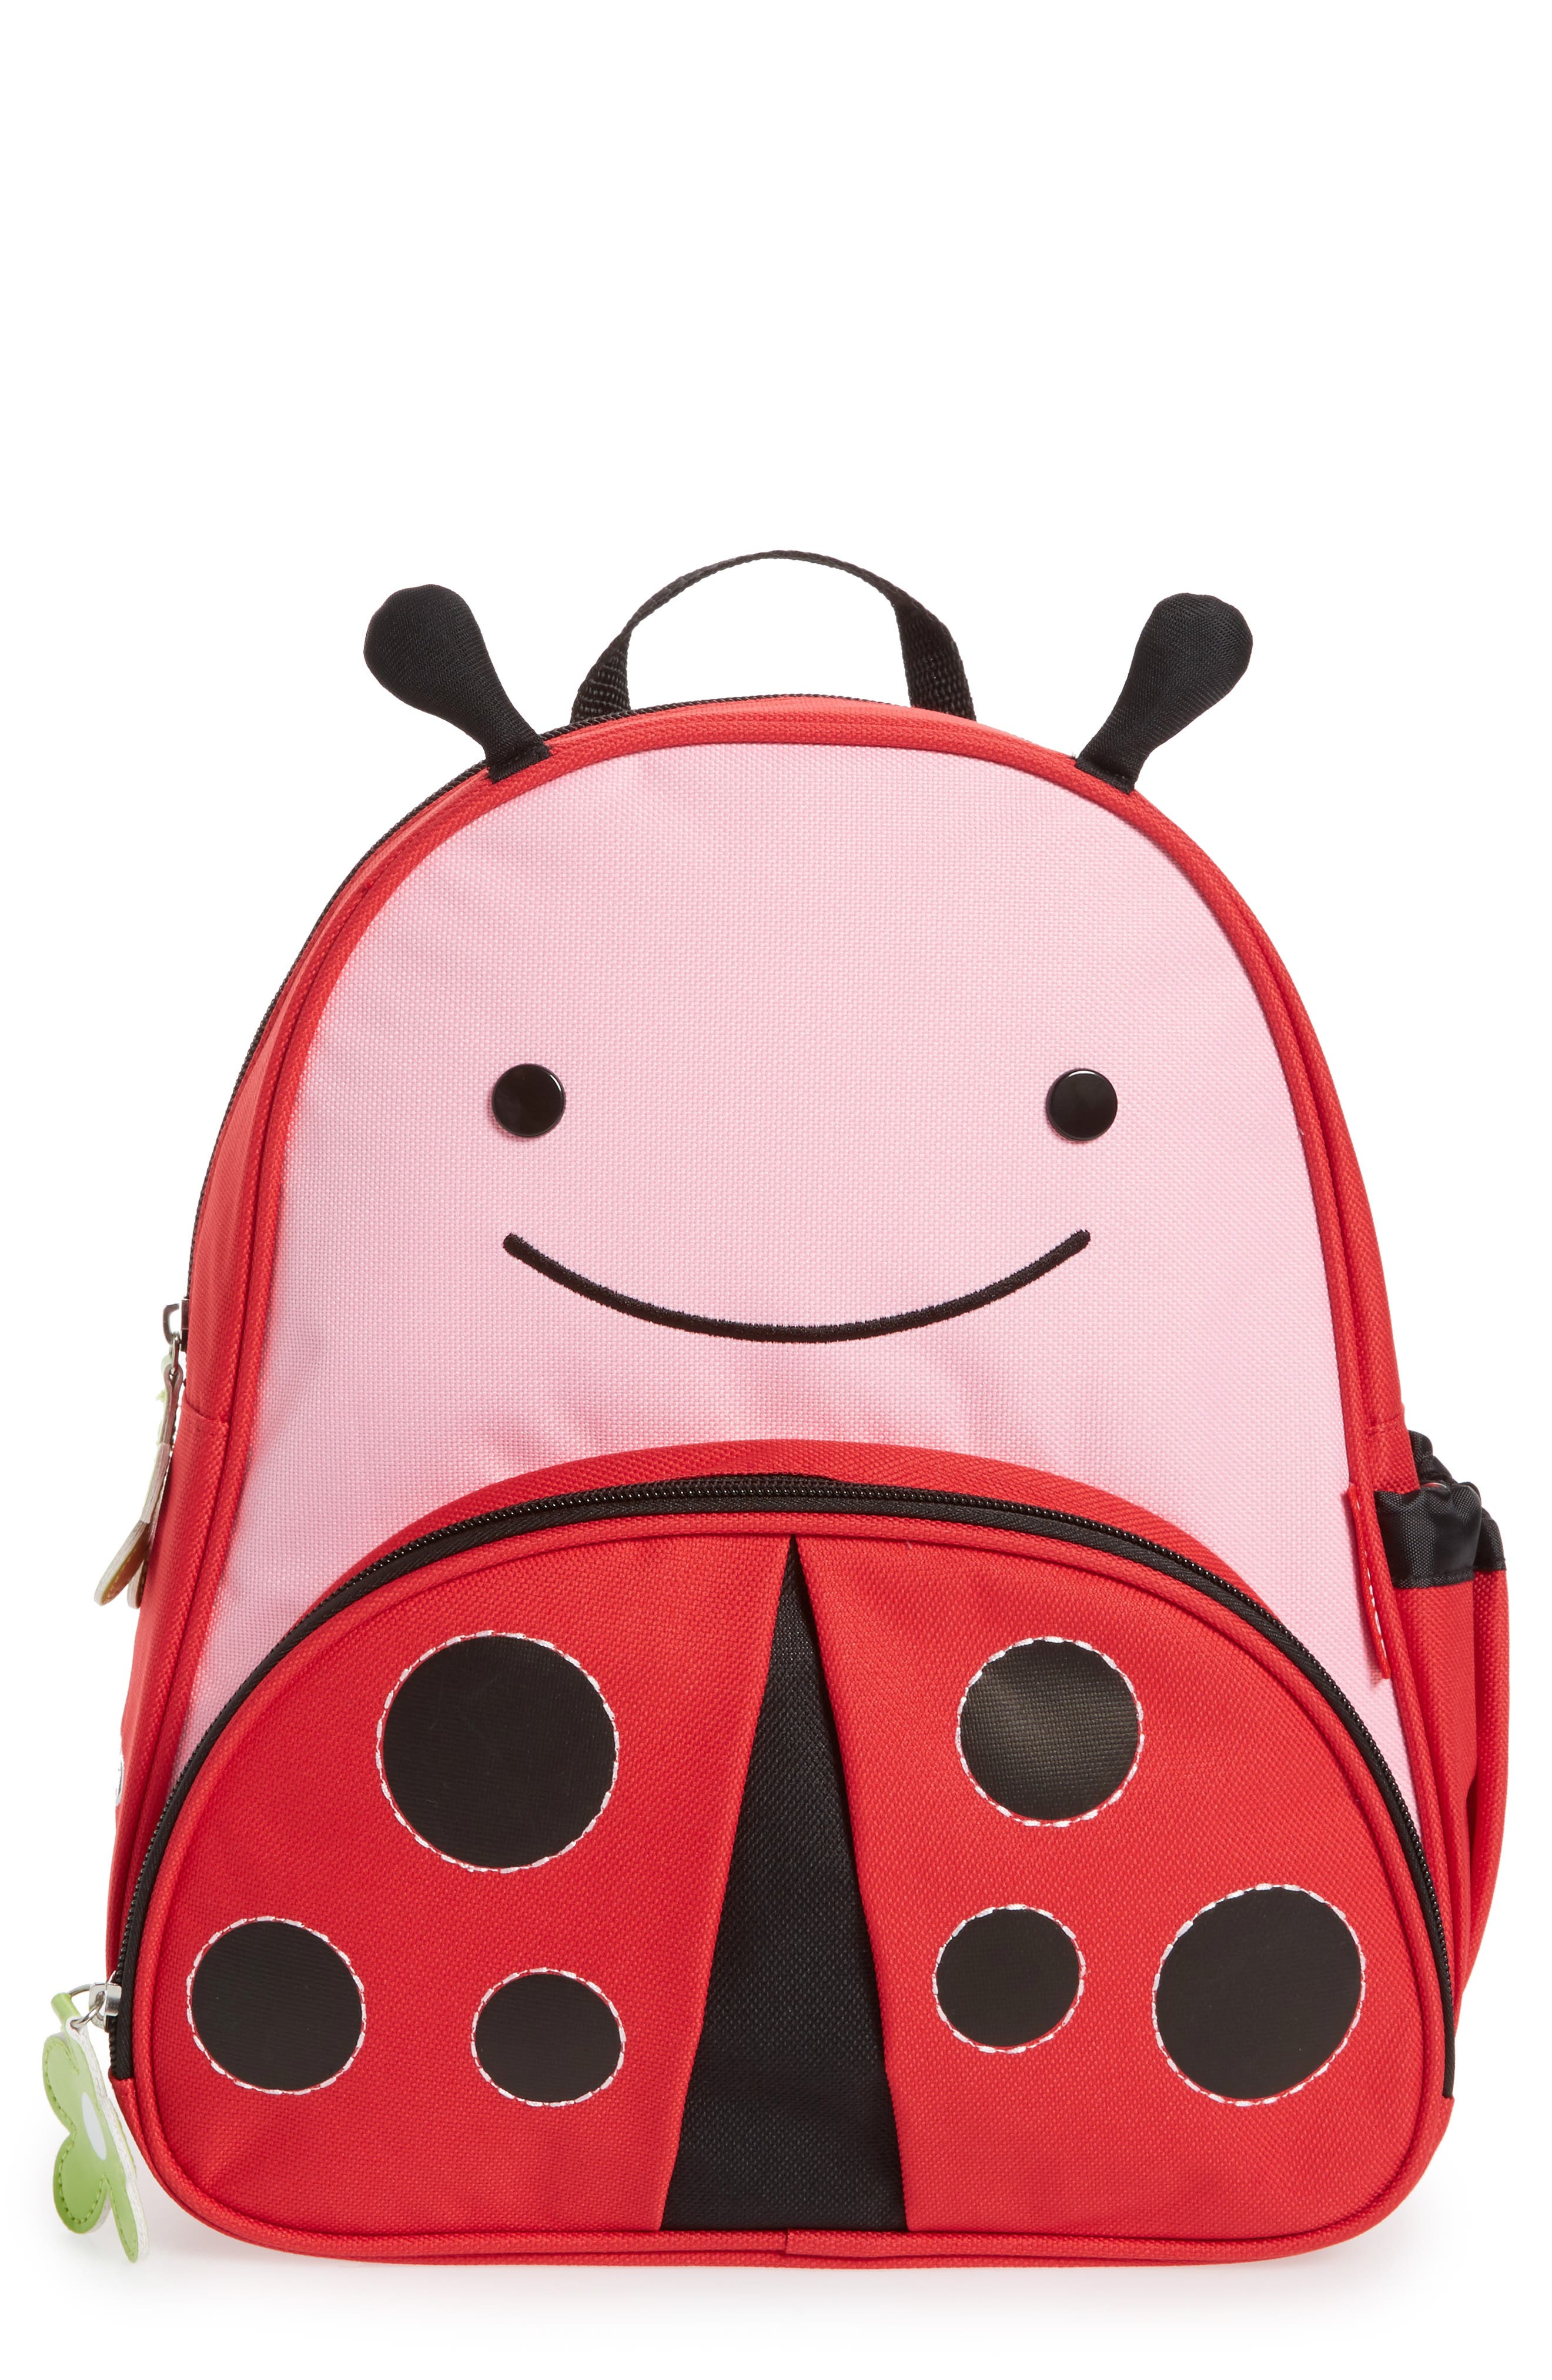 Zoo Pack Backpack,                         Main,                         color, Pink/Red Multi